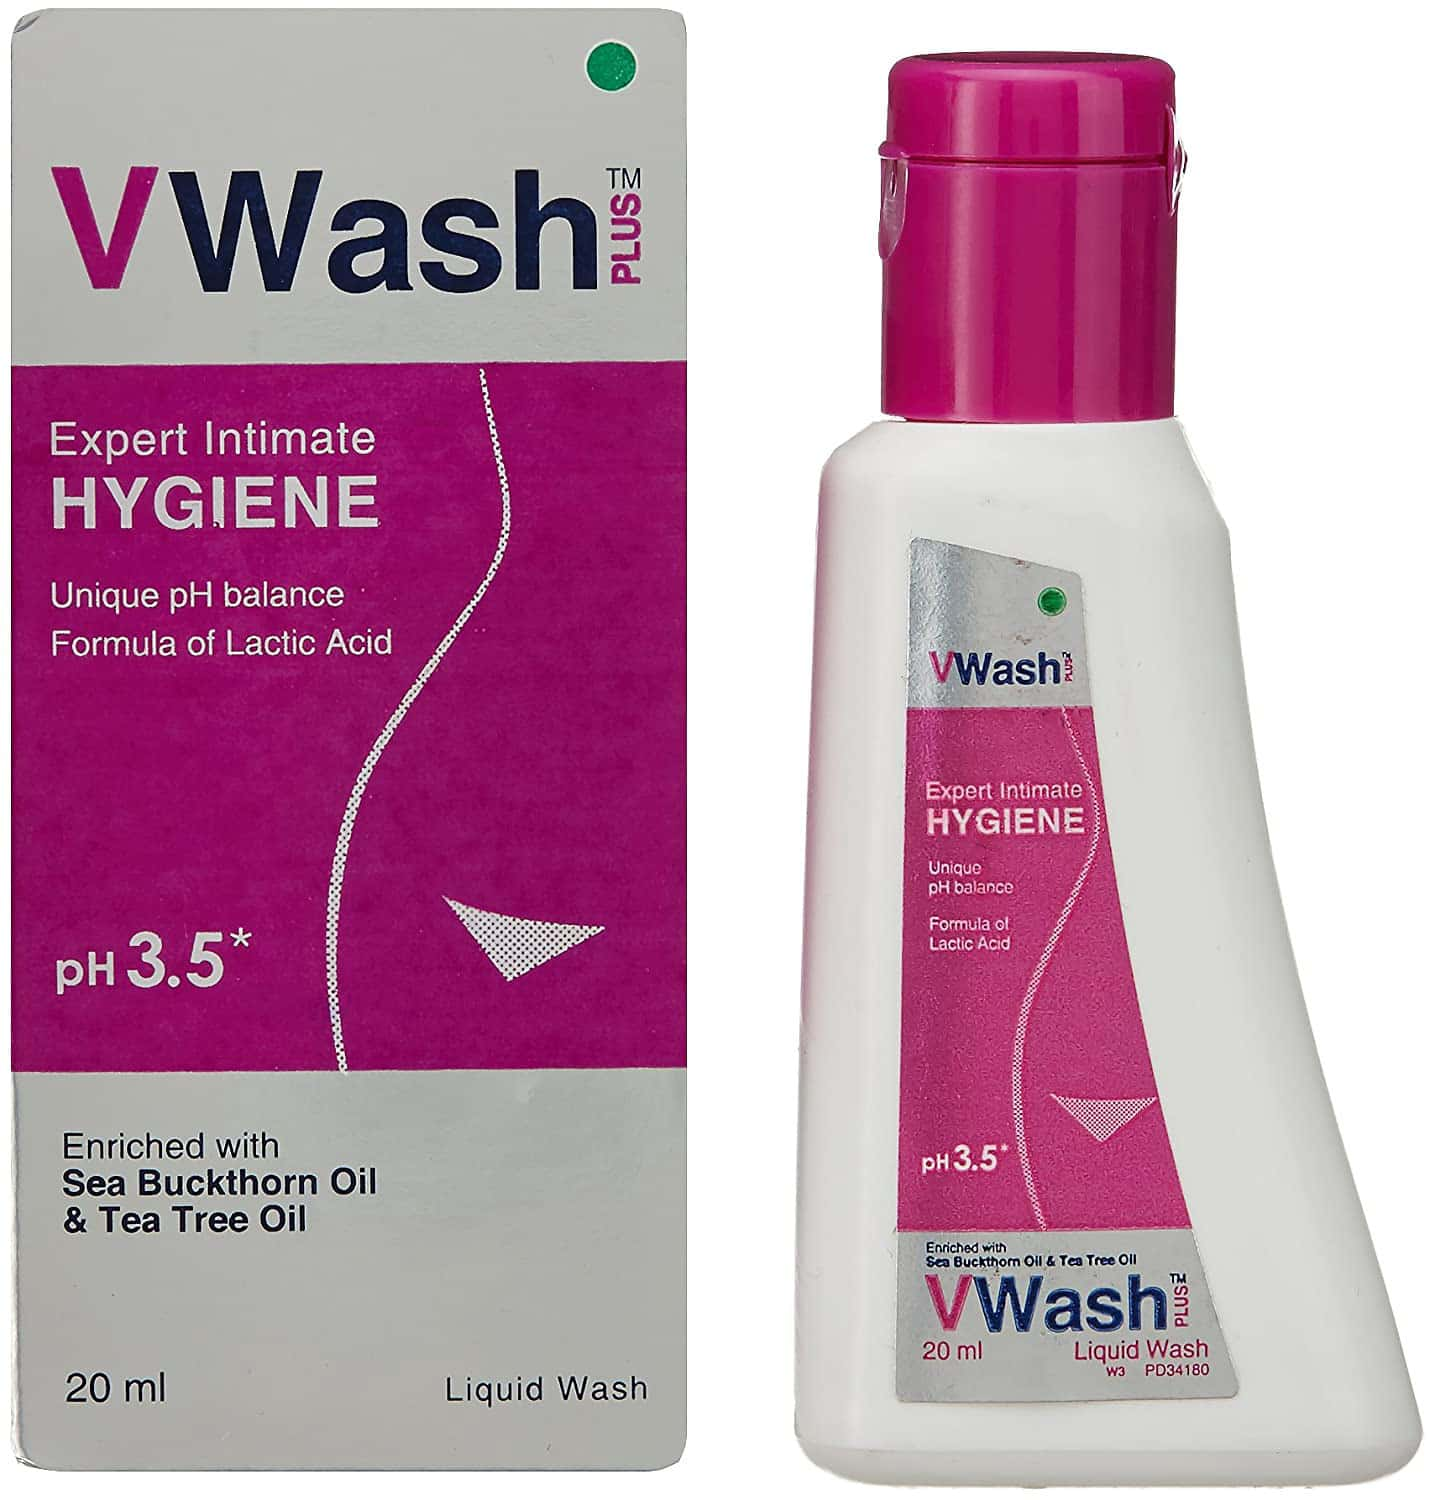 Vwash Plus Ph 3.5 Liquid Wash 20ml